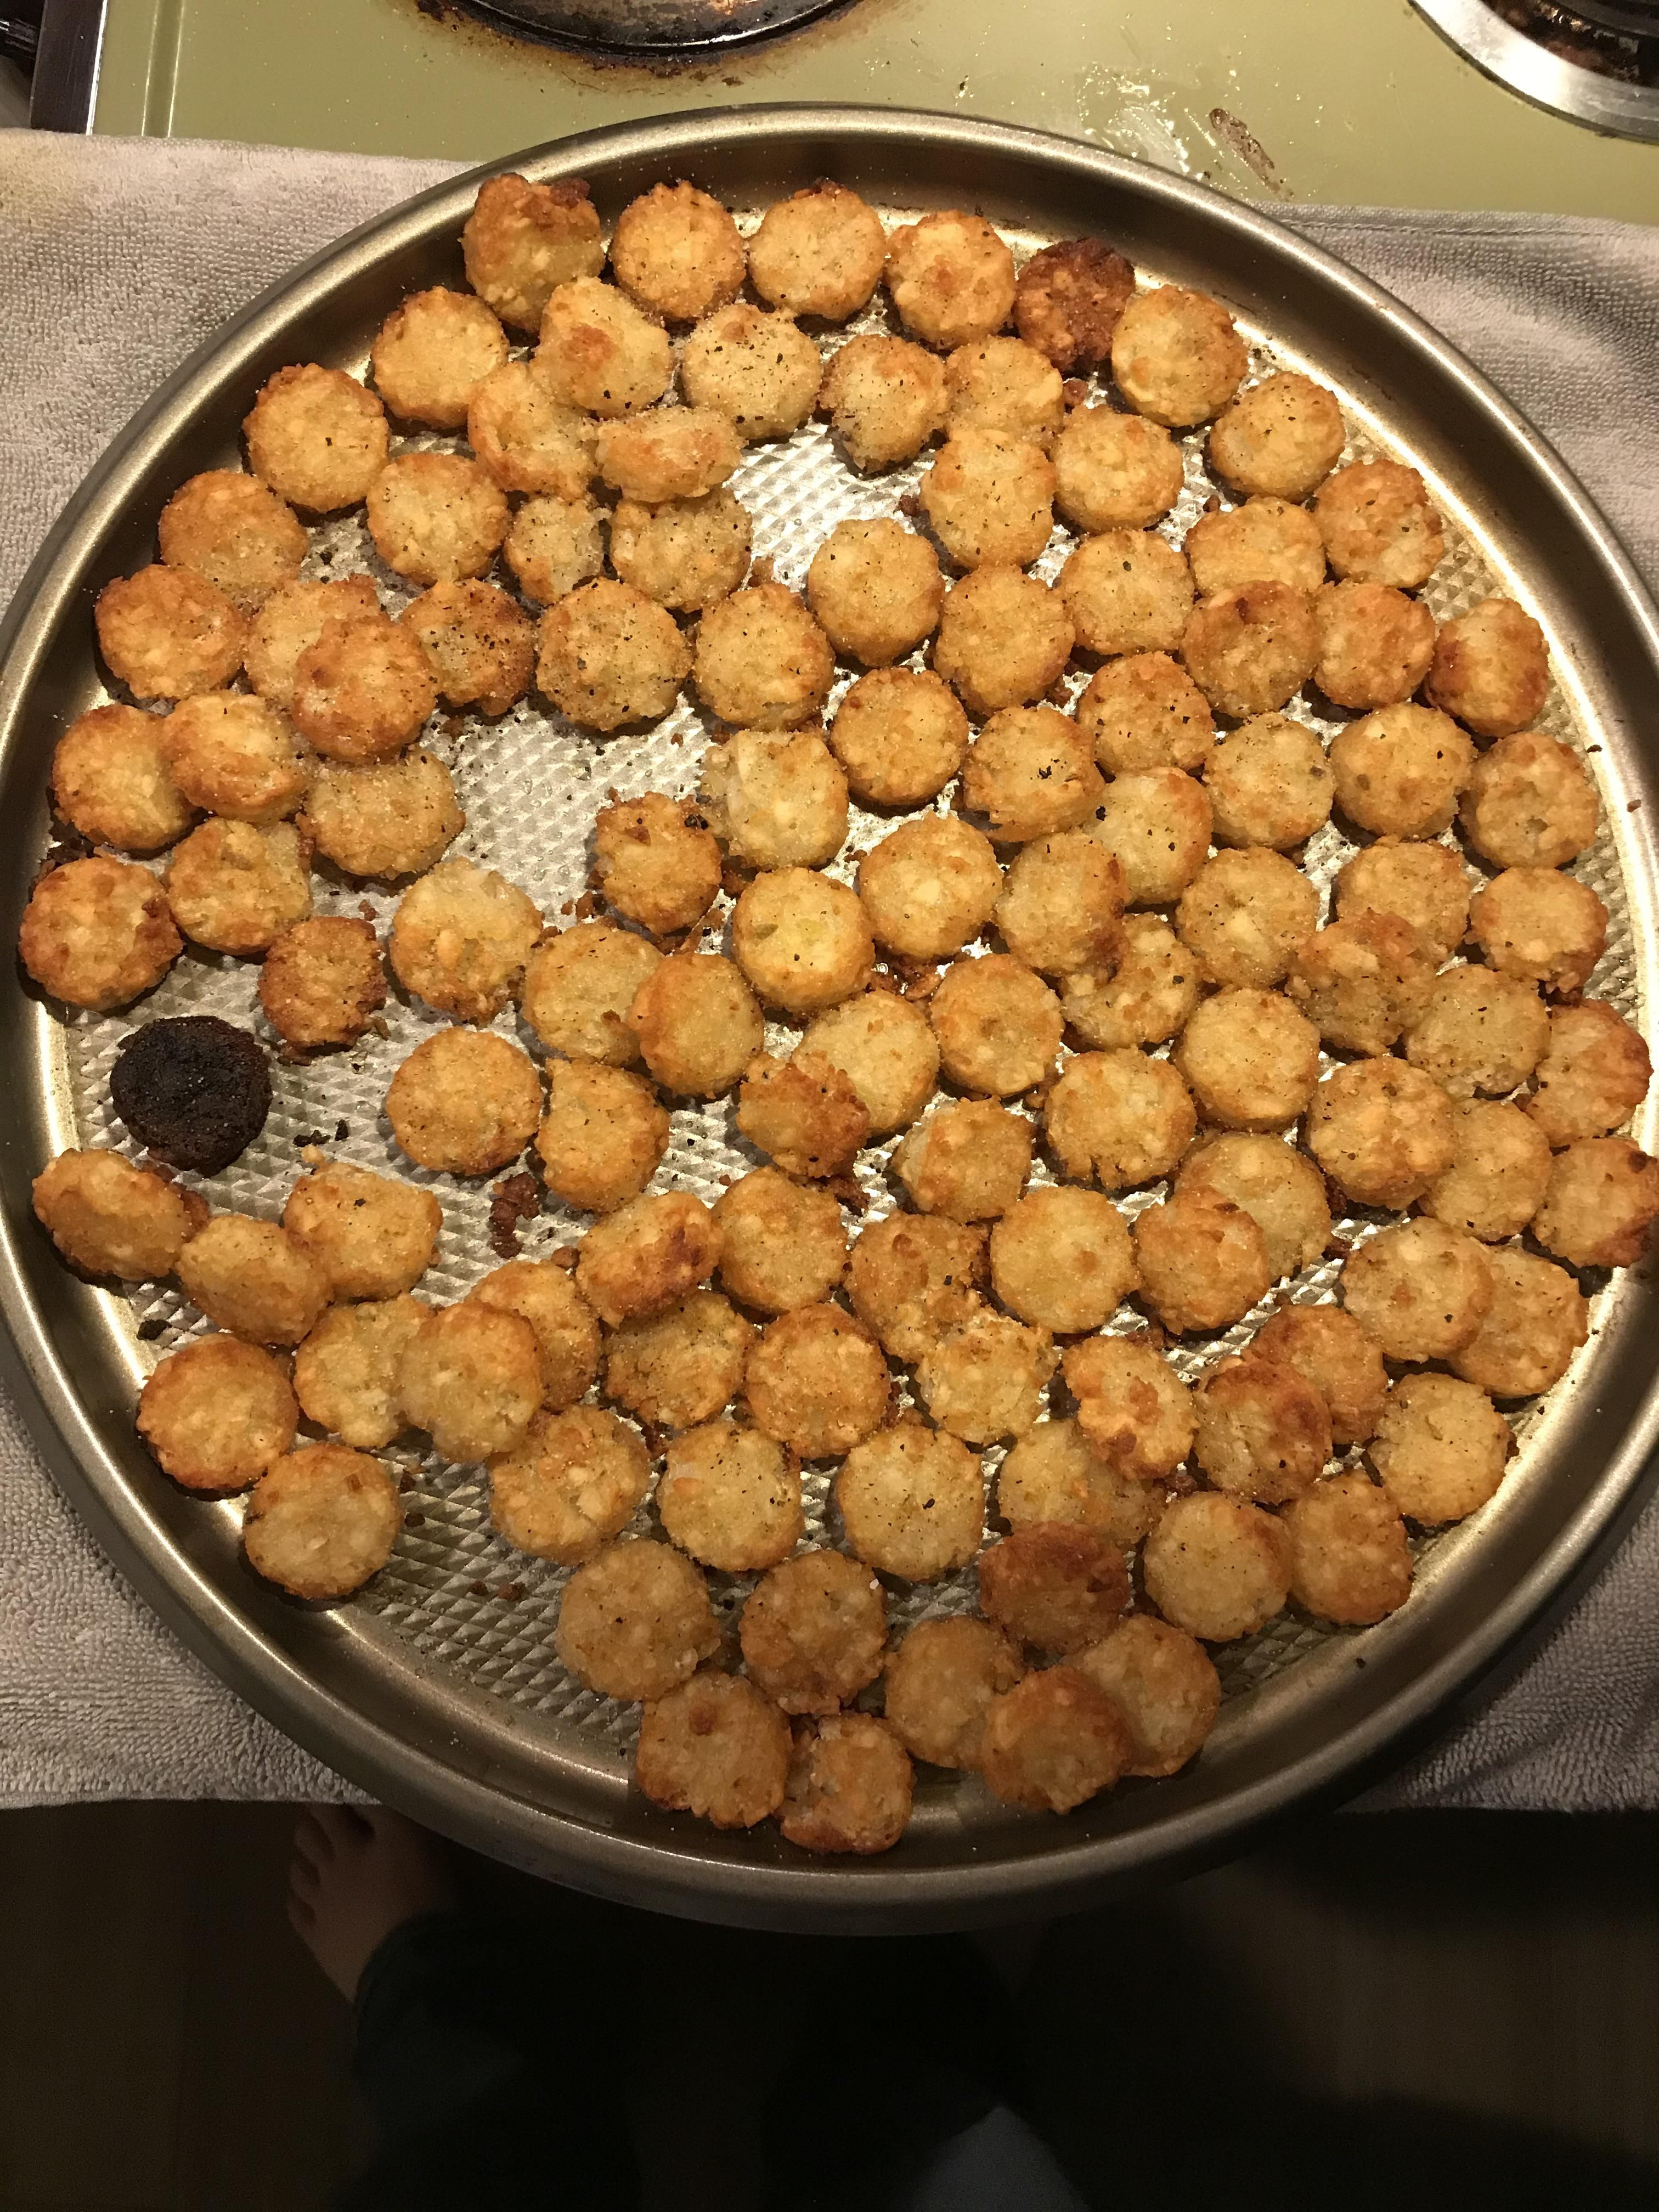 How....how did my oven roast this one tot?